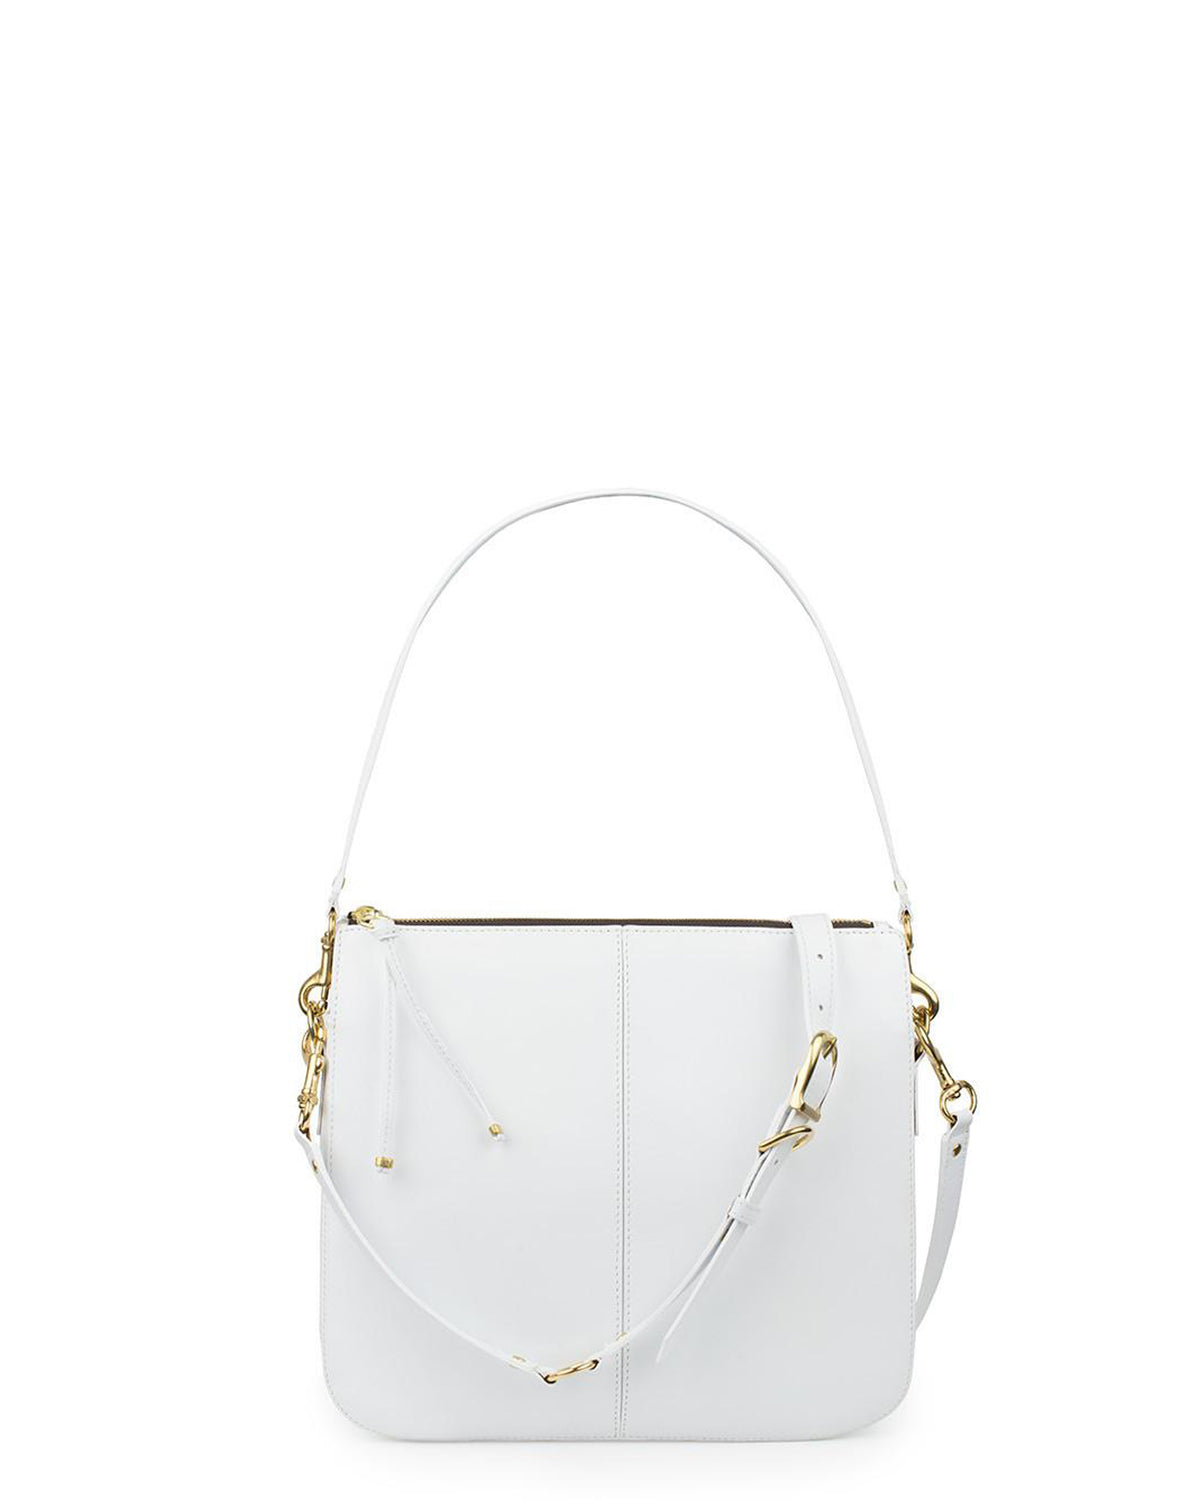 TRIANA MESSENGER in White Napa